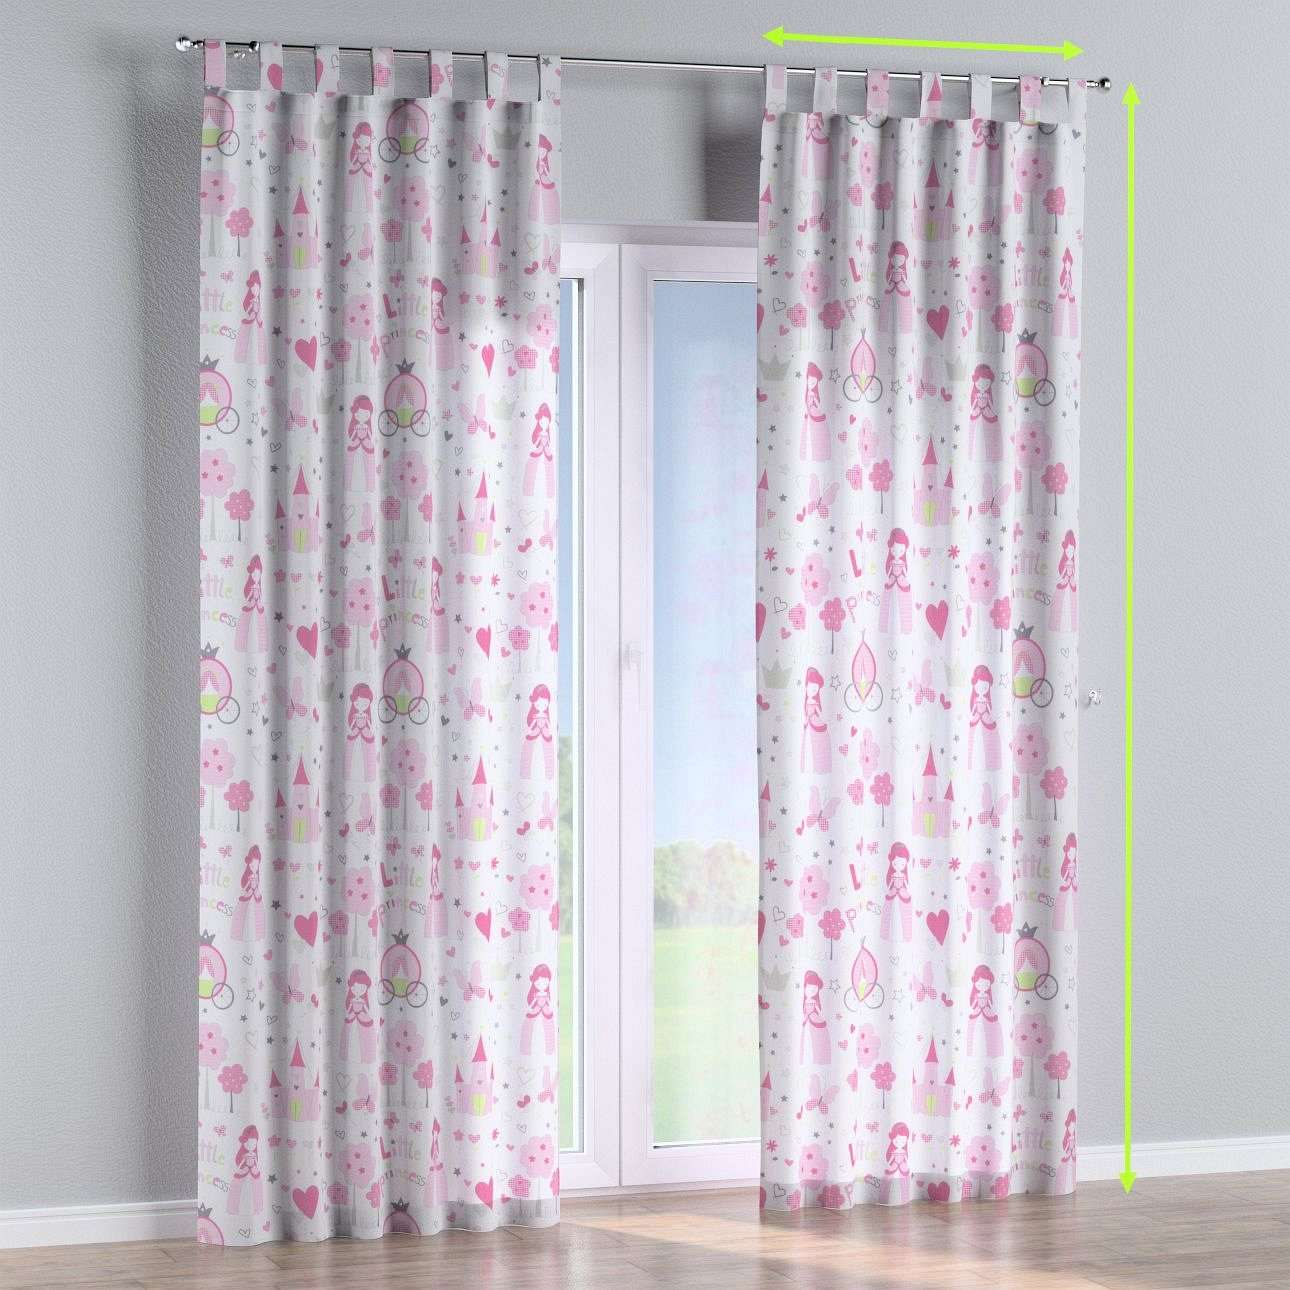 Tab top curtains in collection Little World, fabric: 141-28